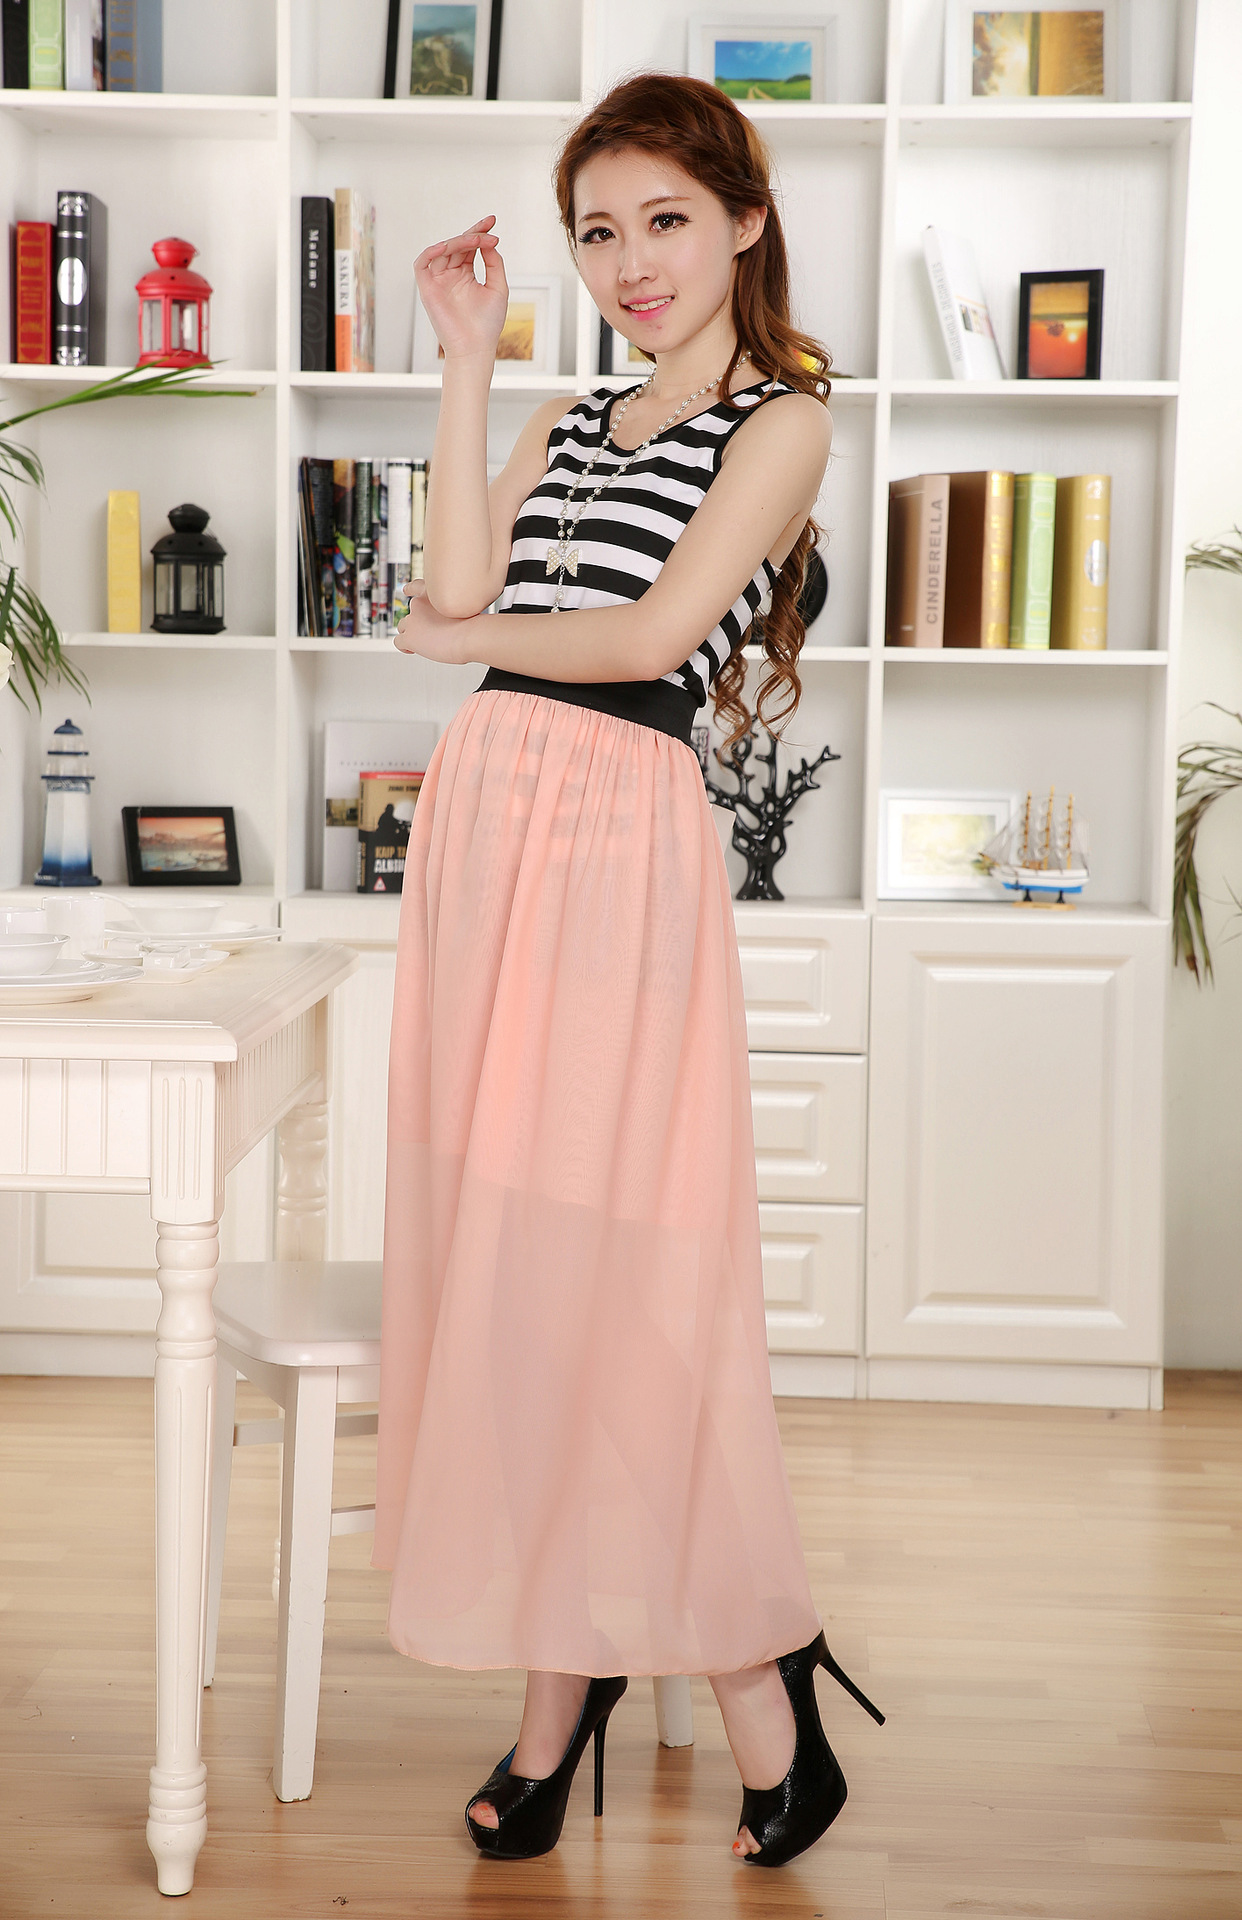 Image 3 - Free Shipping New Brand Designer Hot Sale Candy Colors High Quality Sexy Long Chiffon Skirt Pink Blue Black Red White Green C003-in Skirts from Women's Clothing